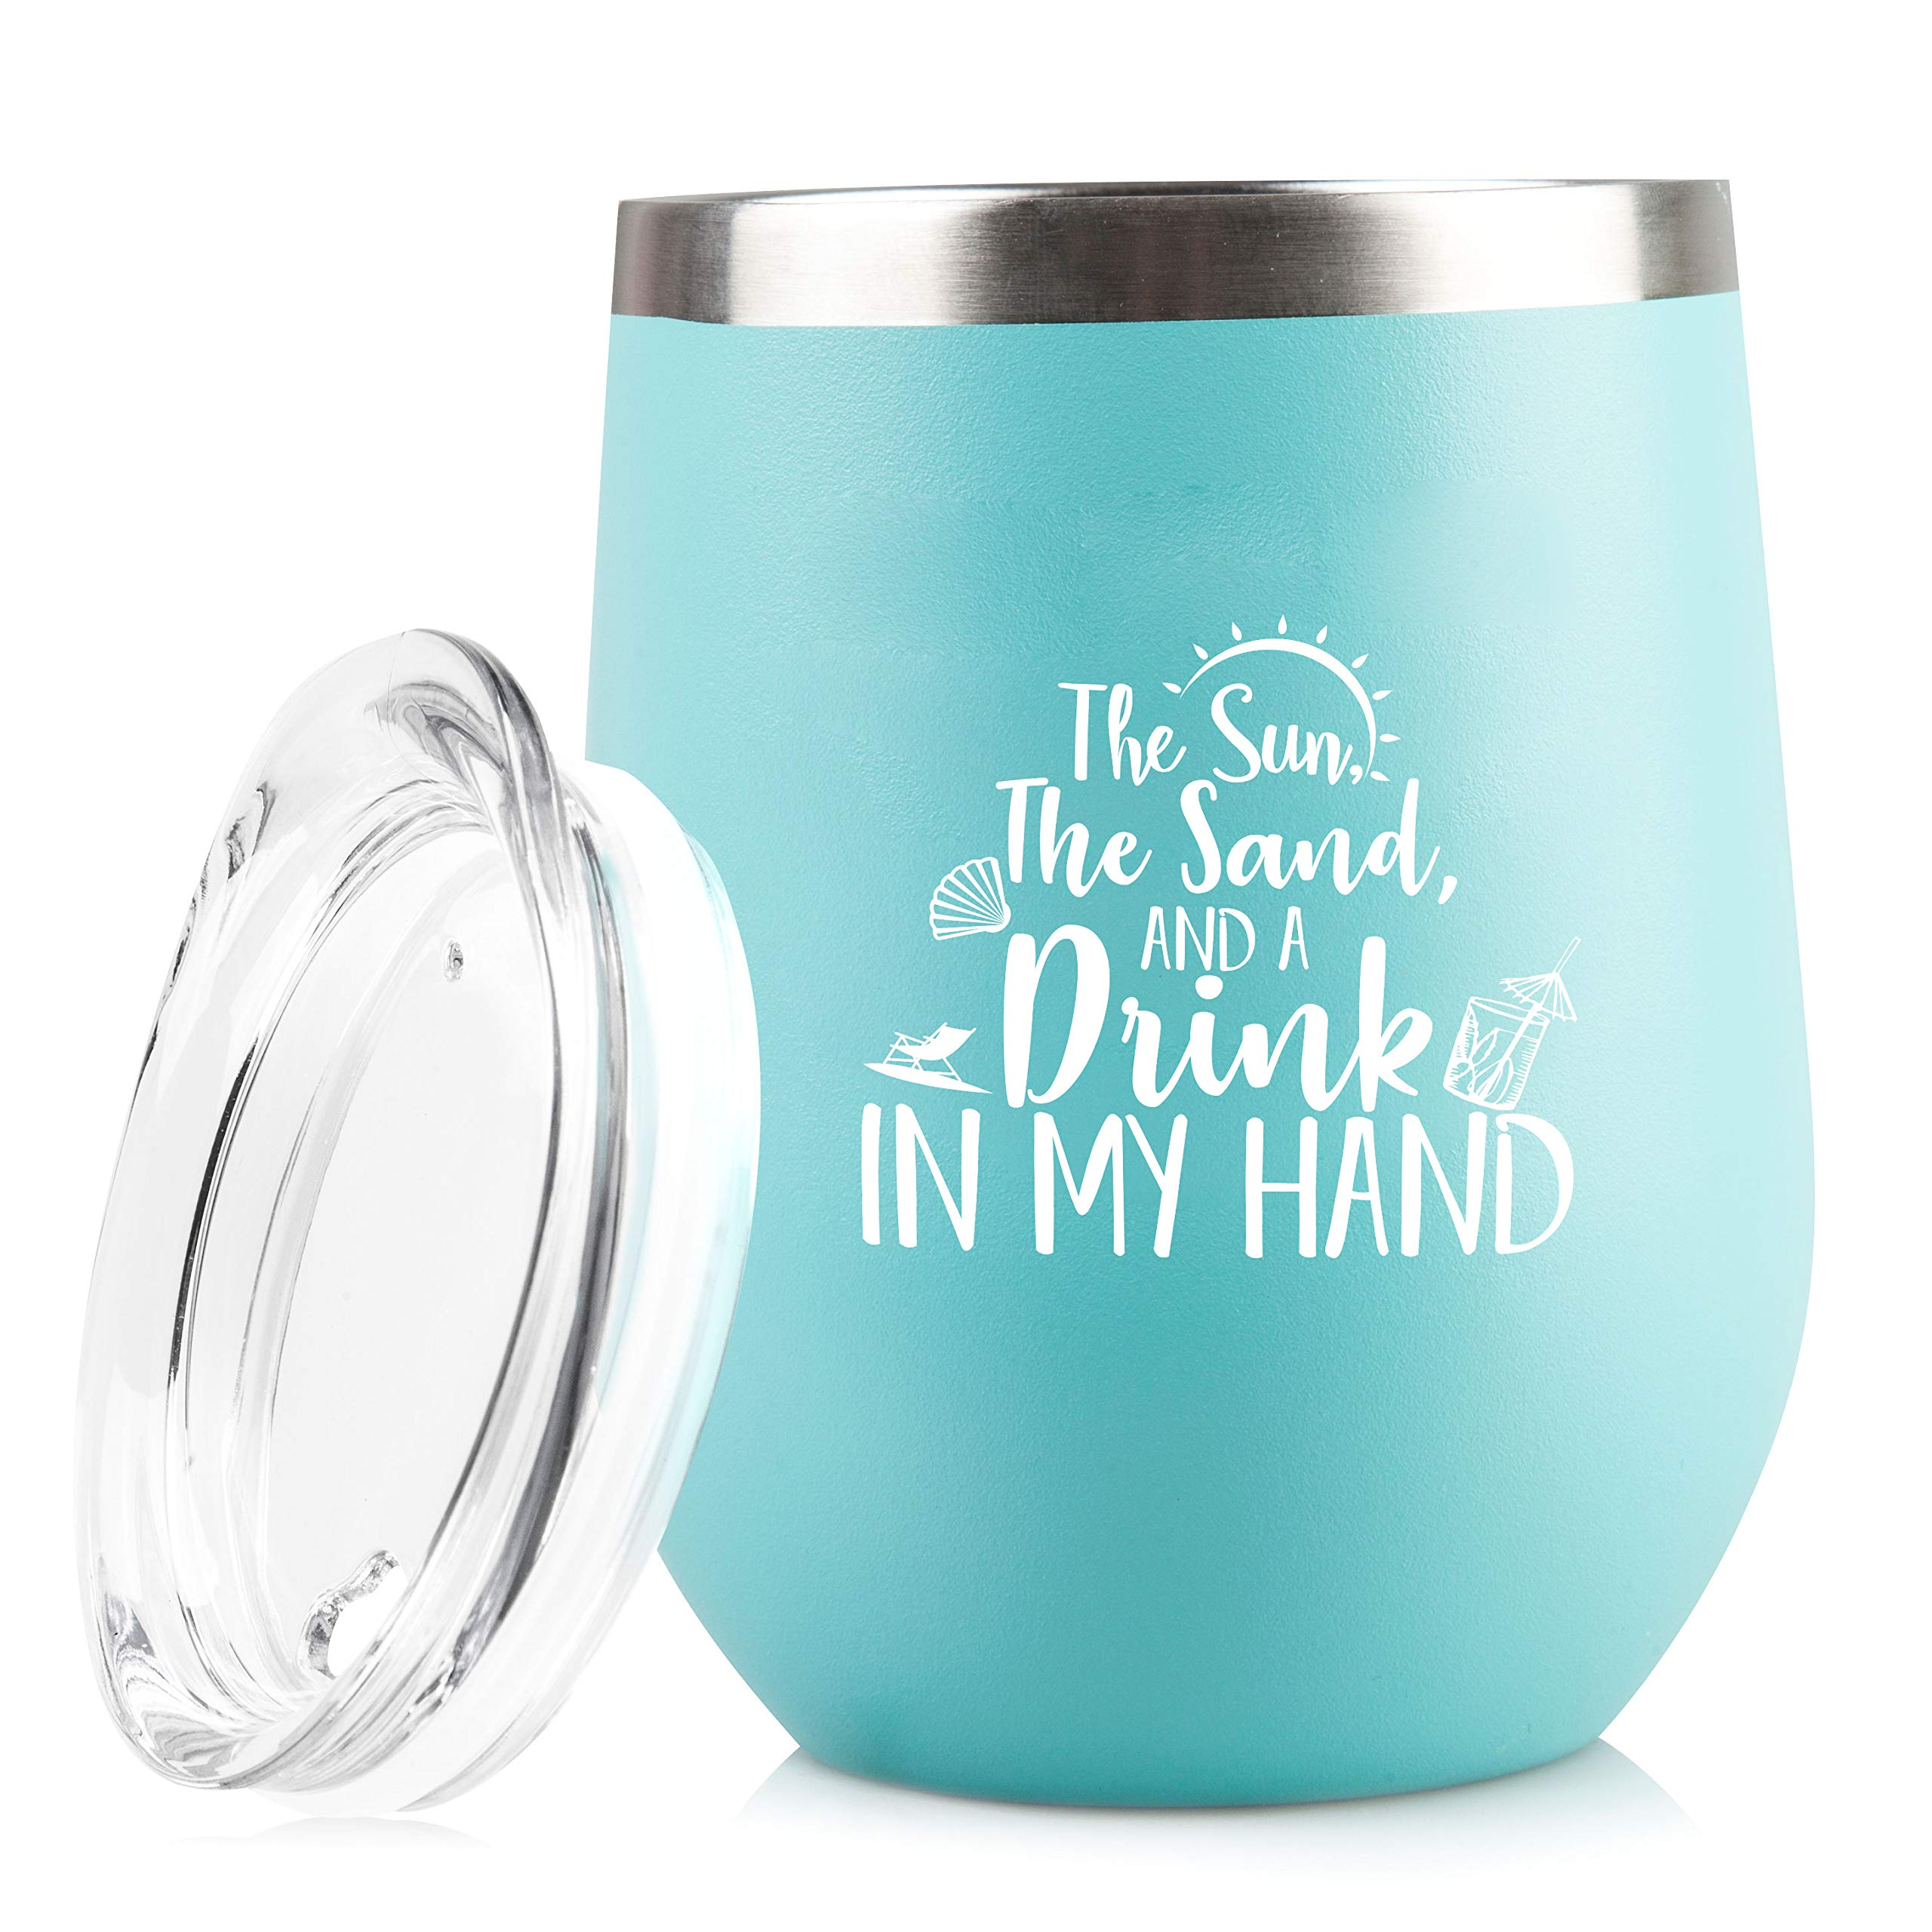 The Sun The Sand and A Drink In My Hand - Perfect Insulated Travel Cup for The Beach, Lake or Pool - 12 oz Stainless Steel Wine Glass Tumbler with Lid